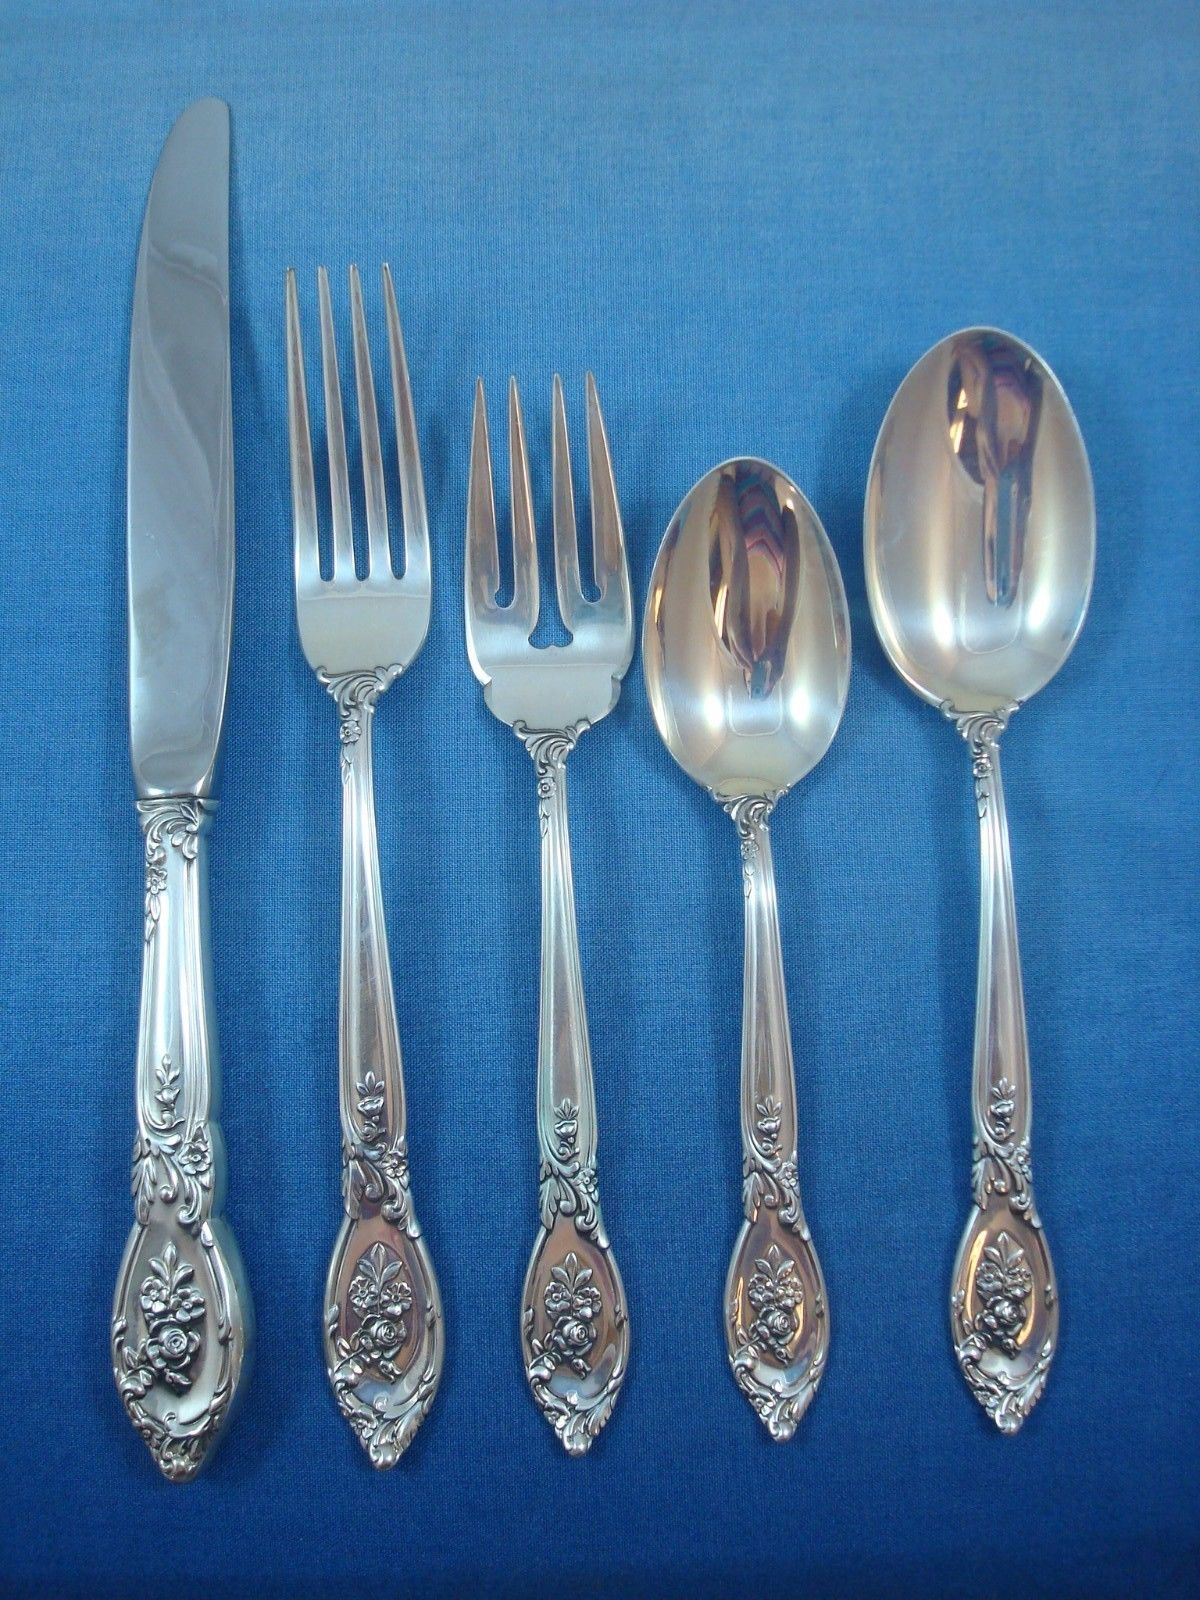 Elegant Flatware Sets Rose Elegance By Lunt Sterling Silver Flatware Service Set